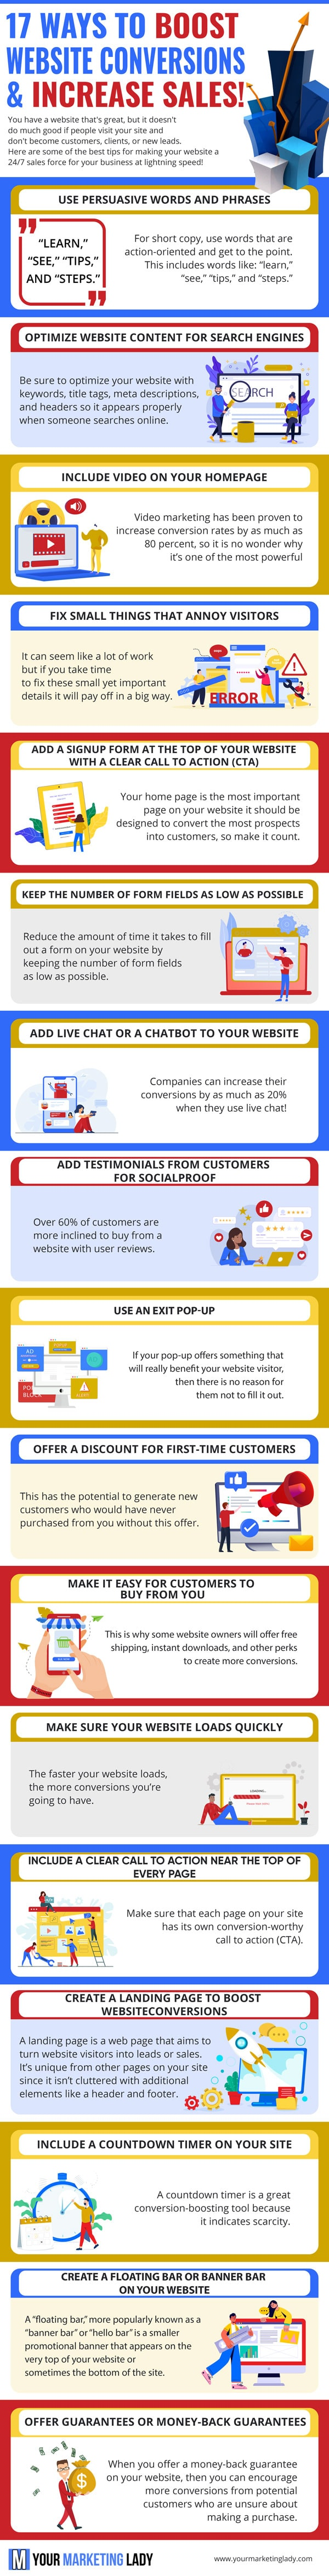 17-ways-to-increase-conversions-infographic